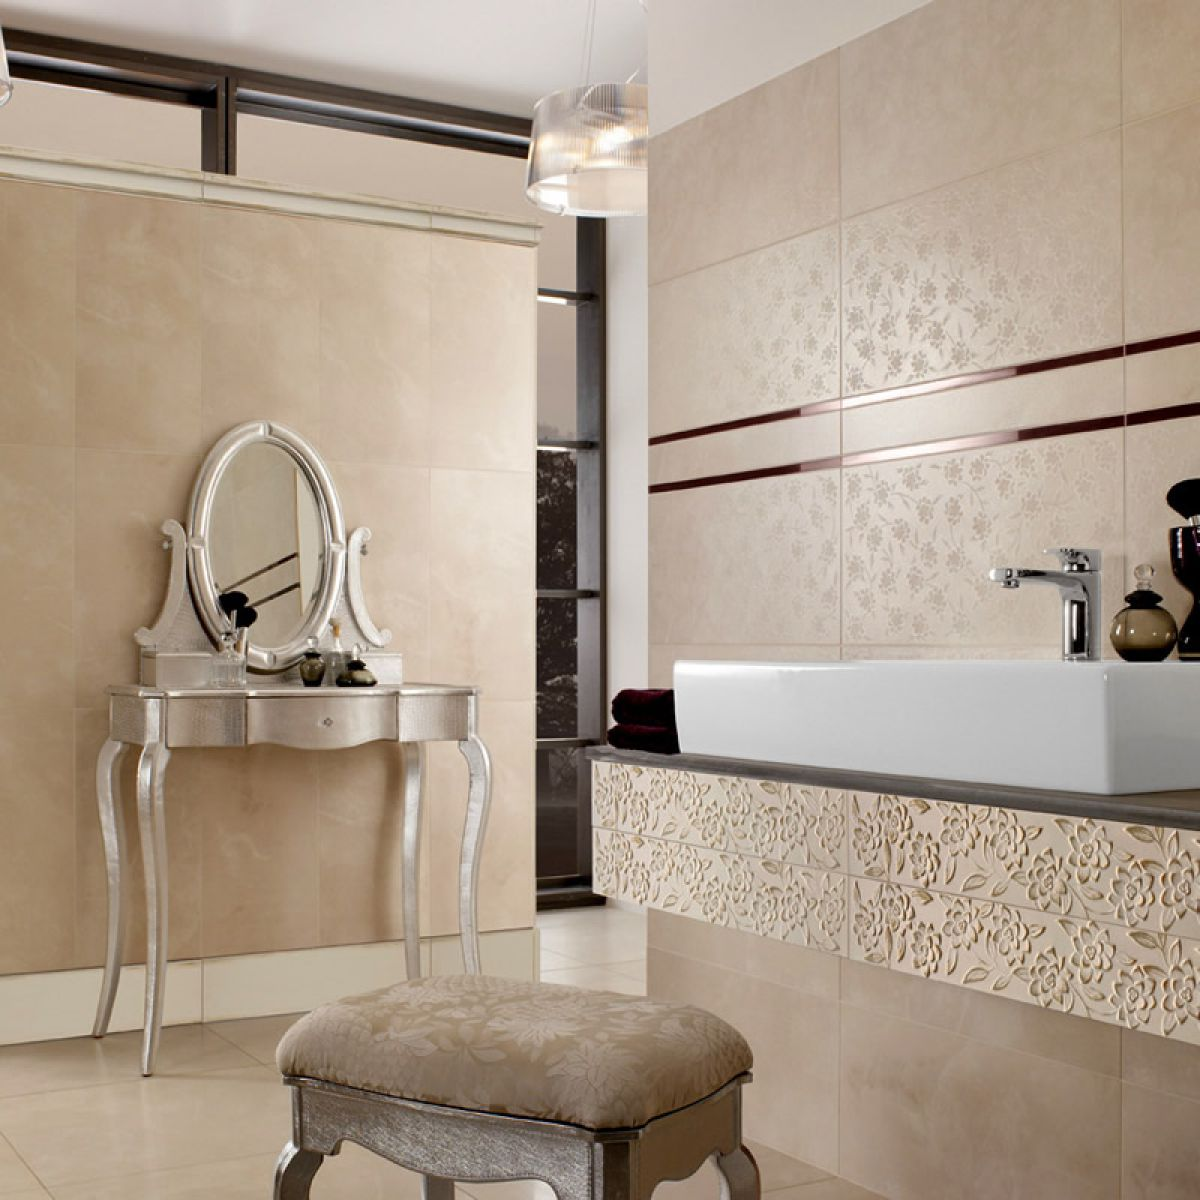 villeroy and boch bathroom tiles villeroy amp boch ivoire decor tile 2394 30 x 60cm uk 24494